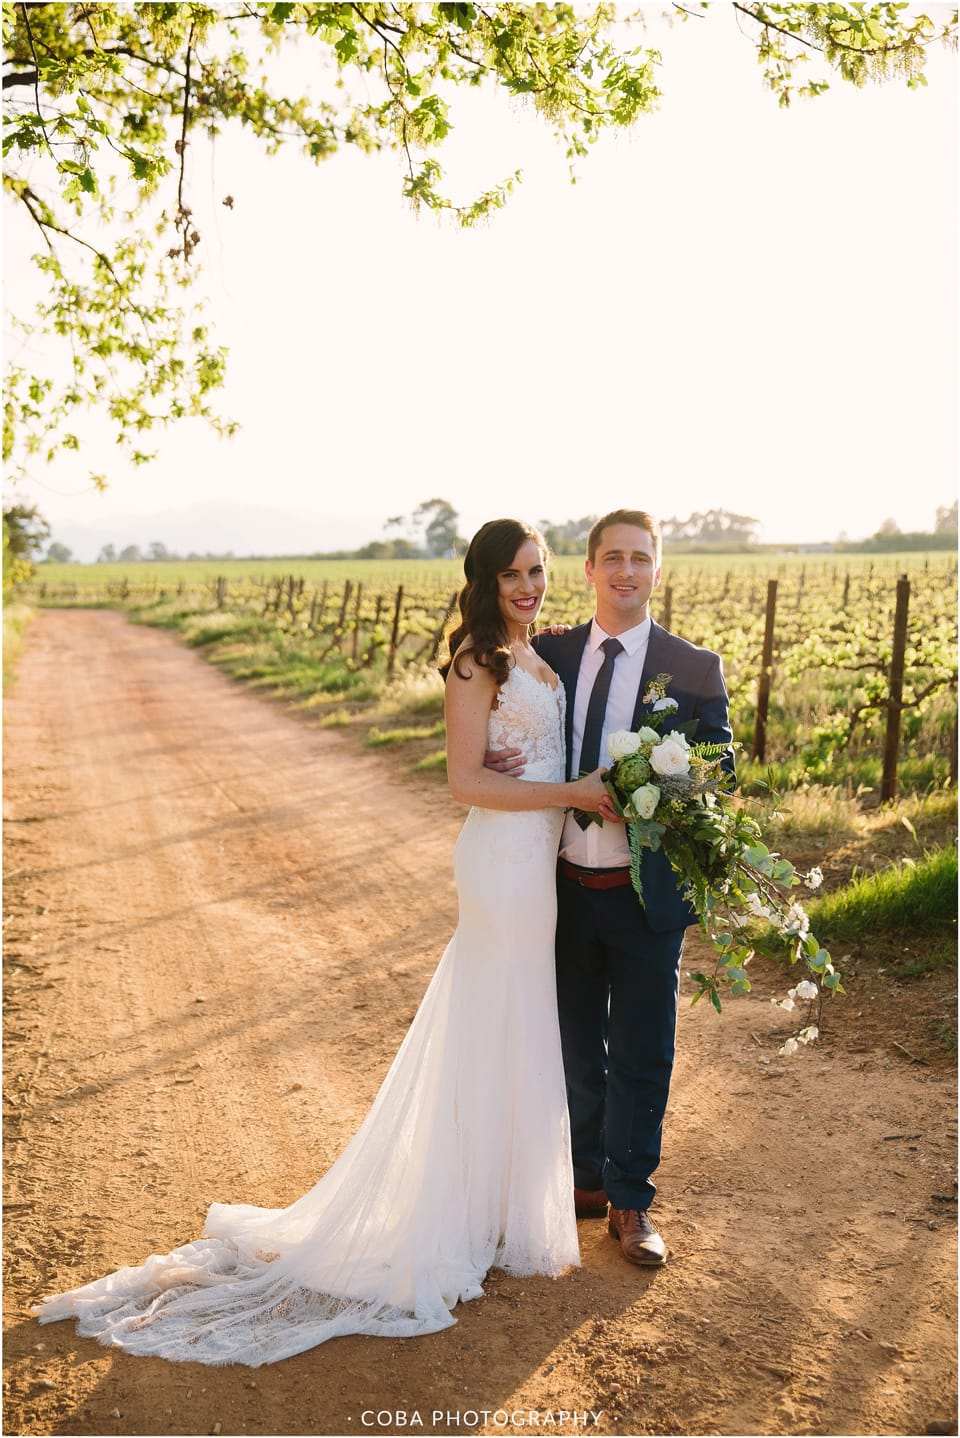 morne-rochelle-coba-photography-wedding-243